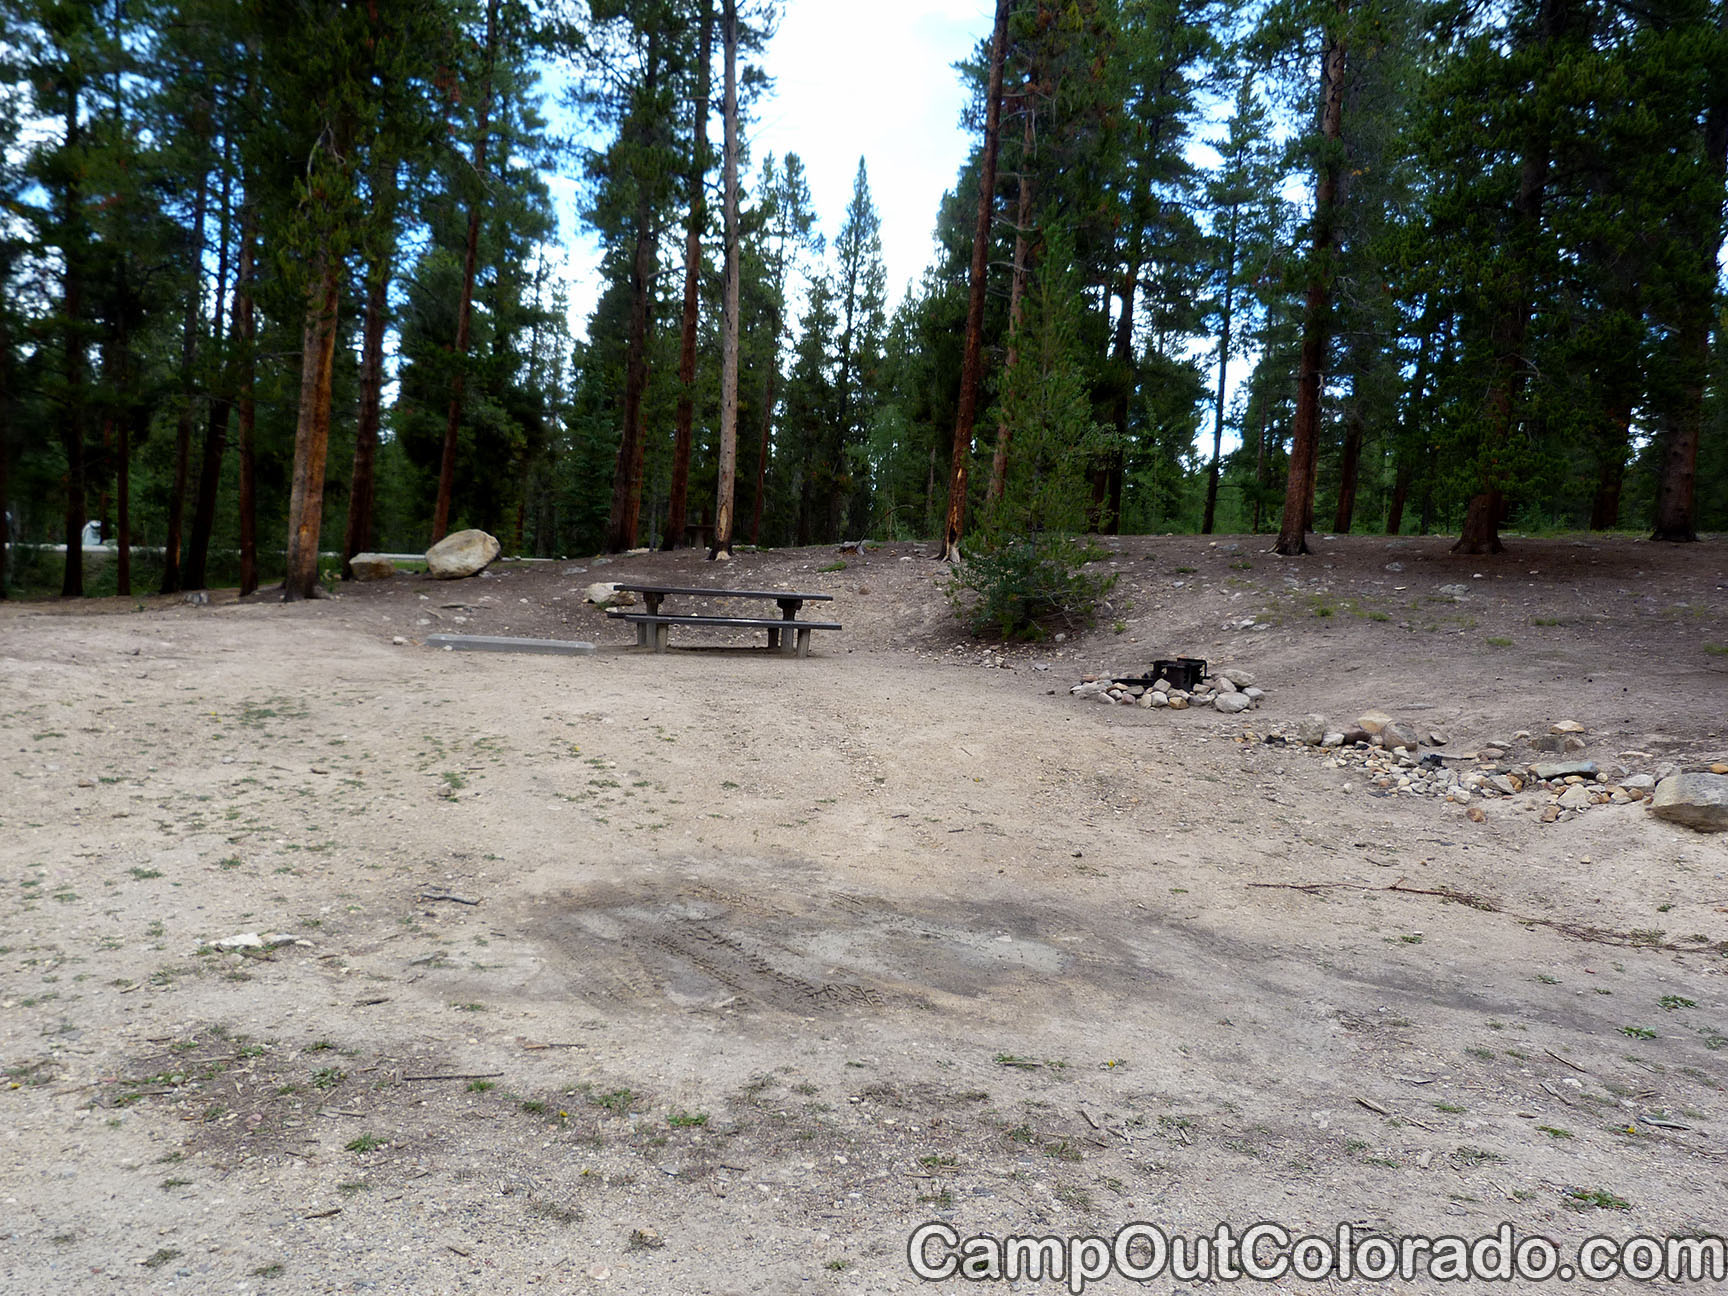 Camp-out-colorado-molly-brown-turquoise-lake-rough-camp-site